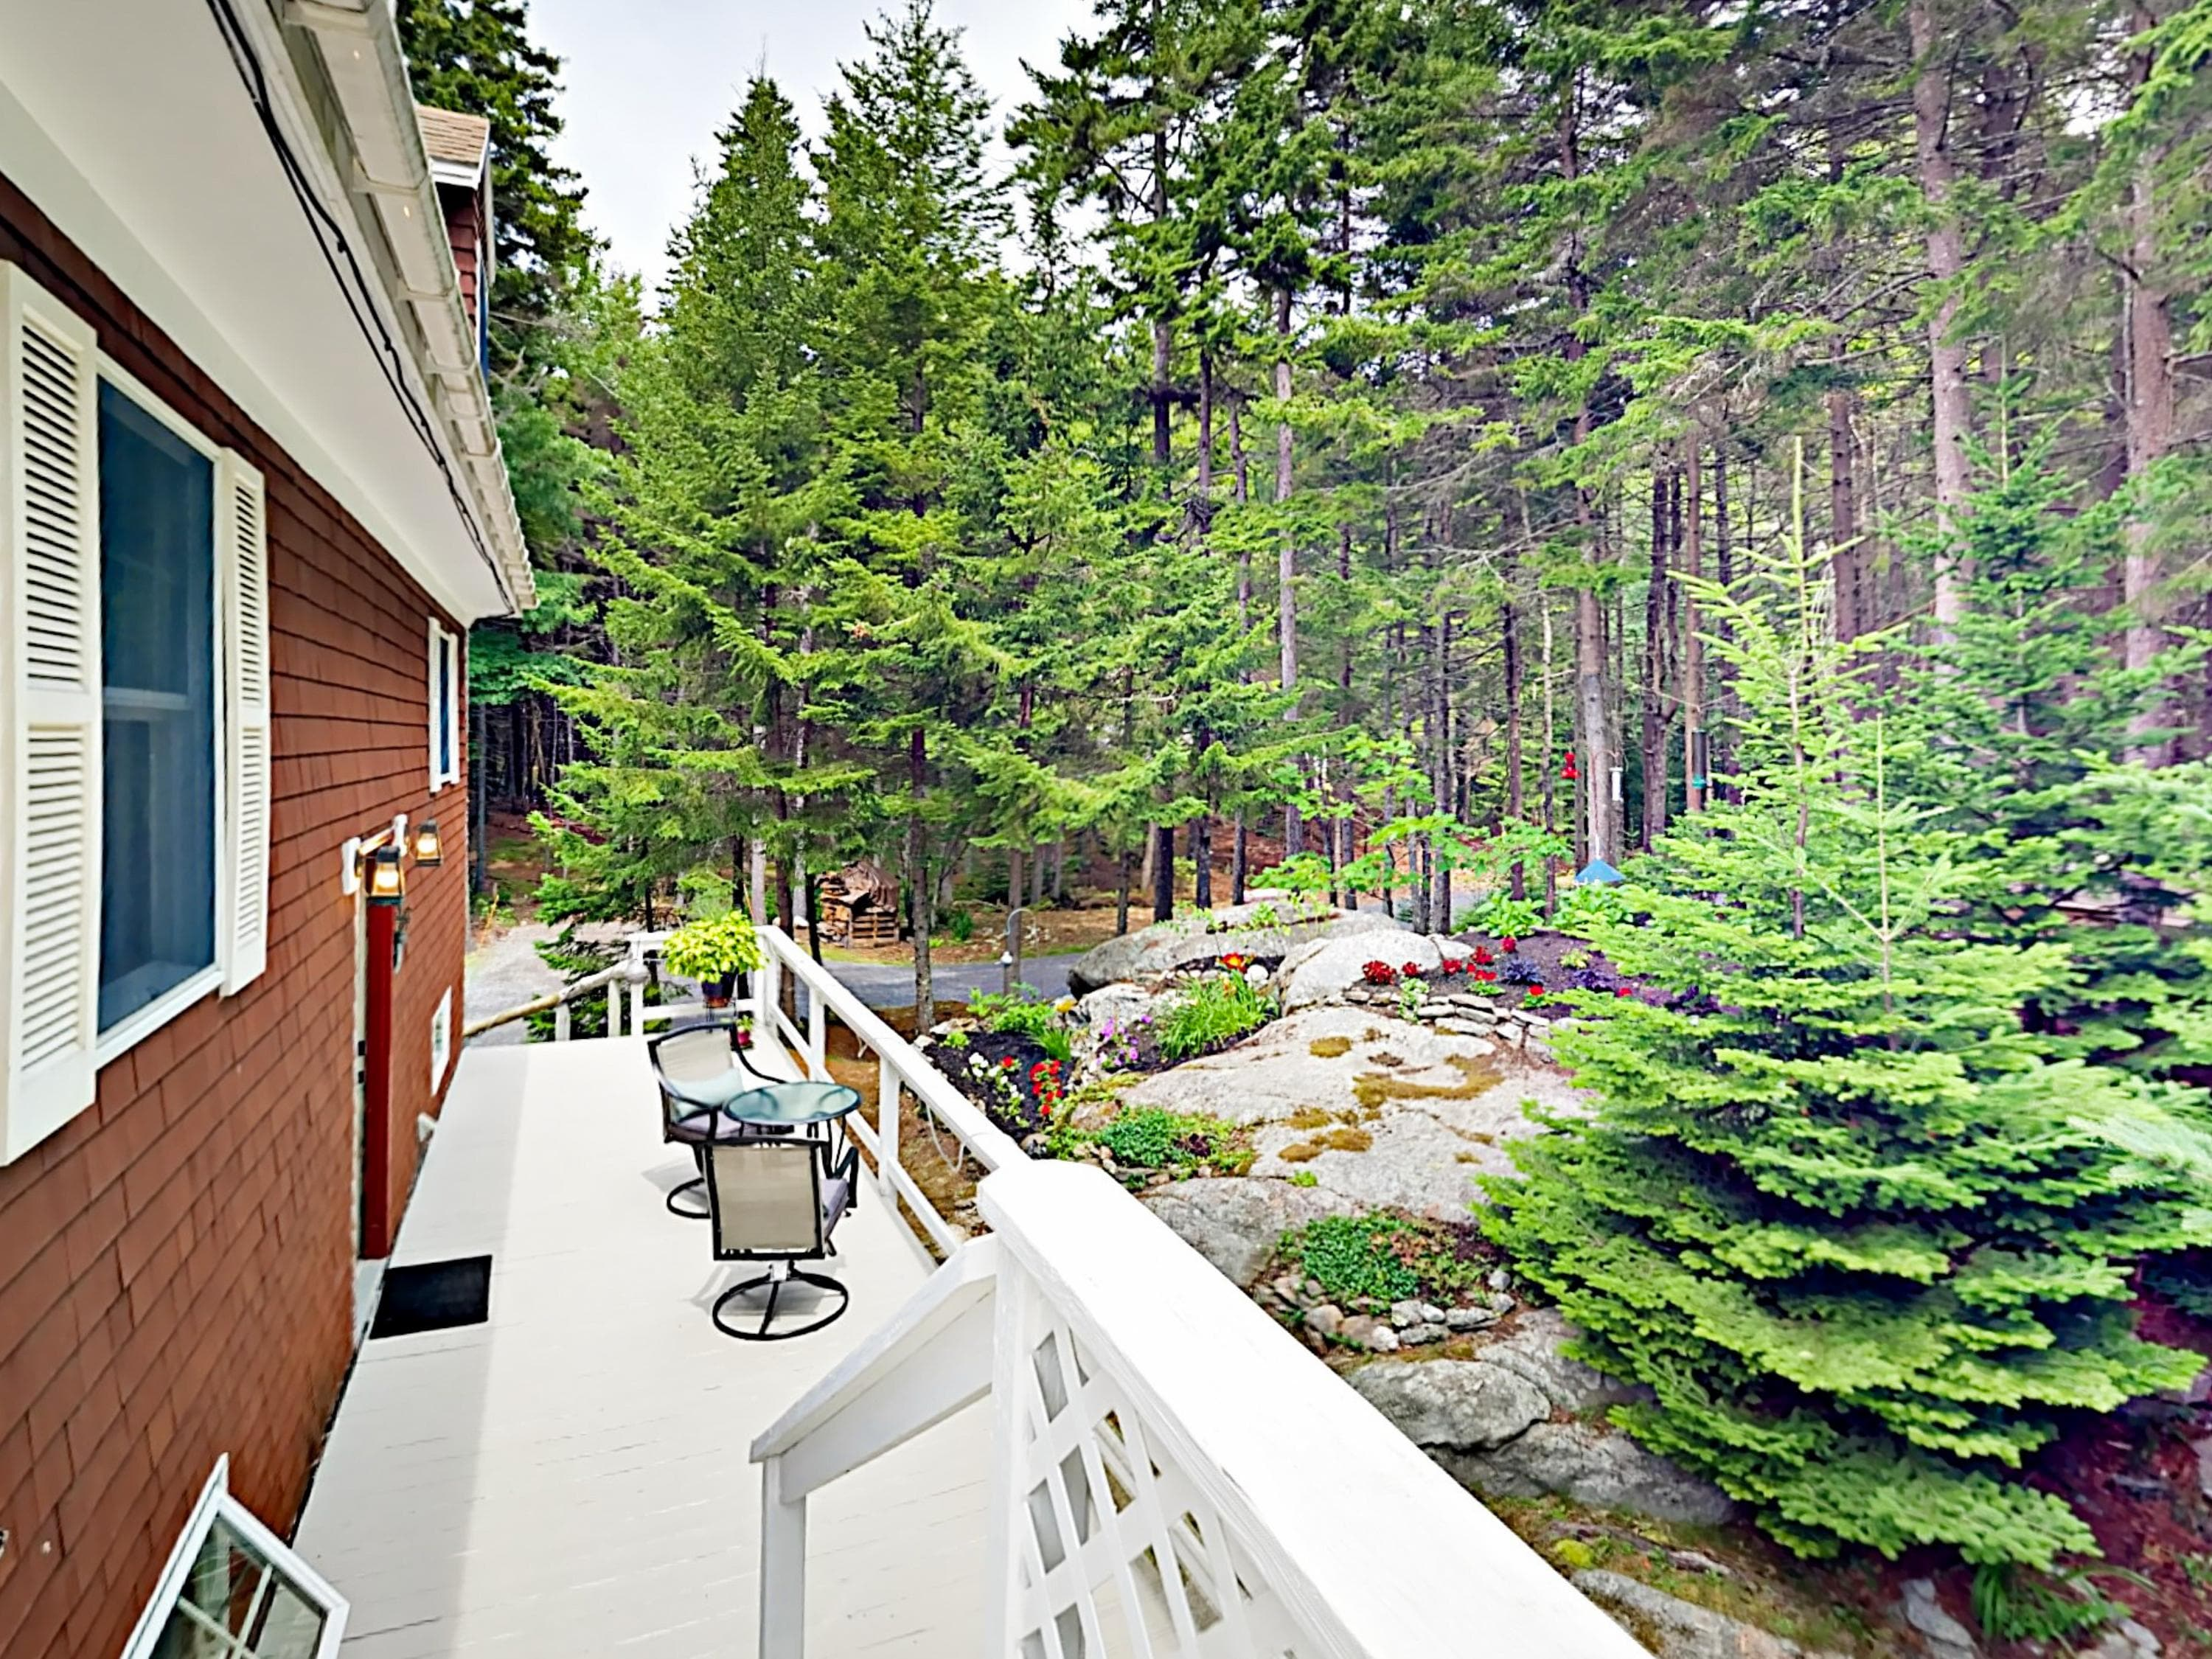 The side deck offers views of the garden and surrounding forest.